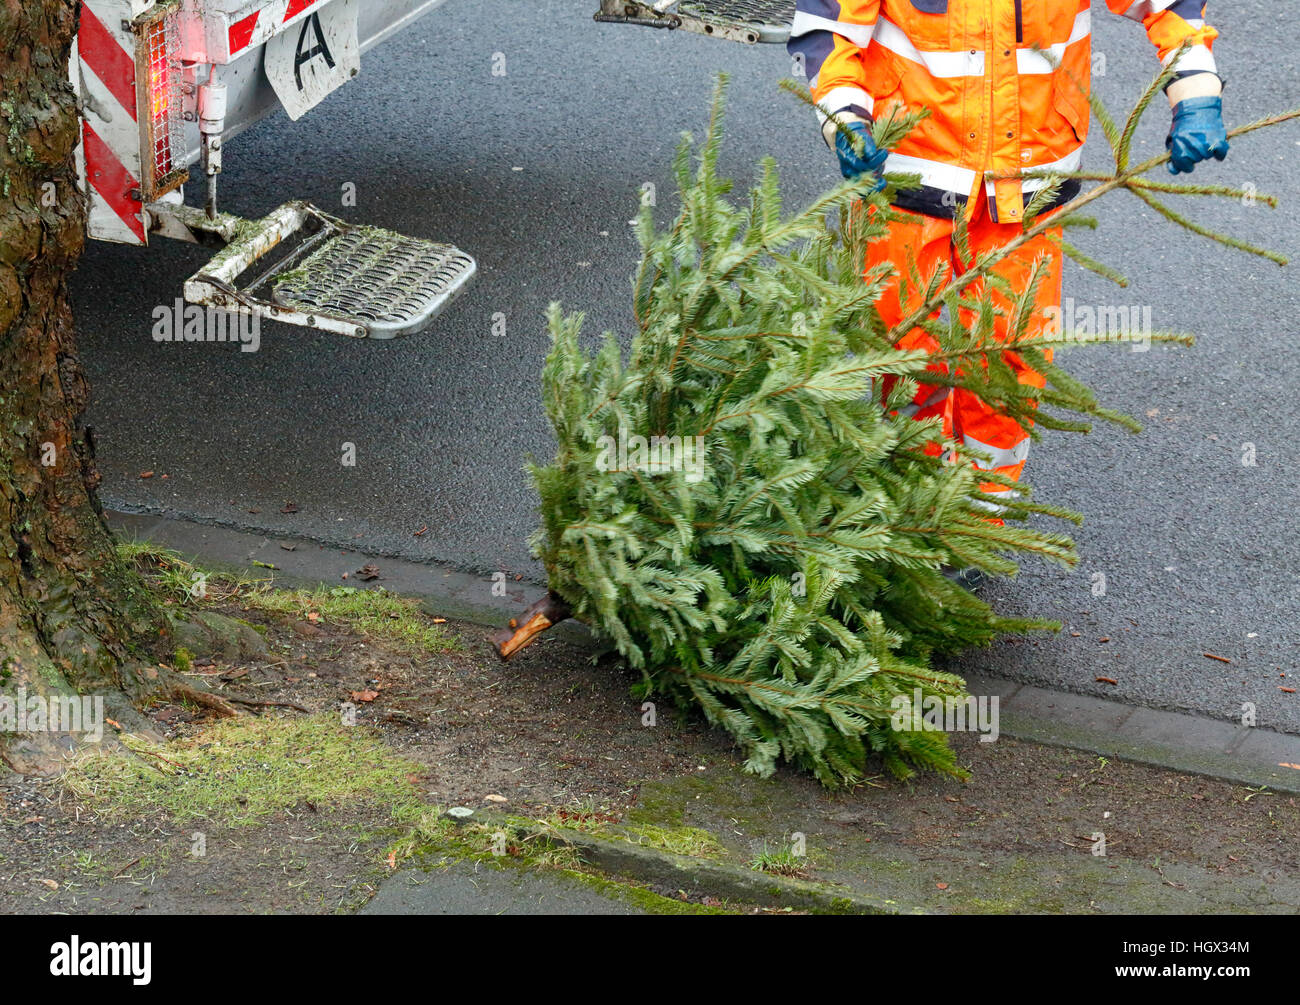 collection of a Christmas tree after the Christmas festival by a binman for disposal, refuse management, trash removal, Stock Photo